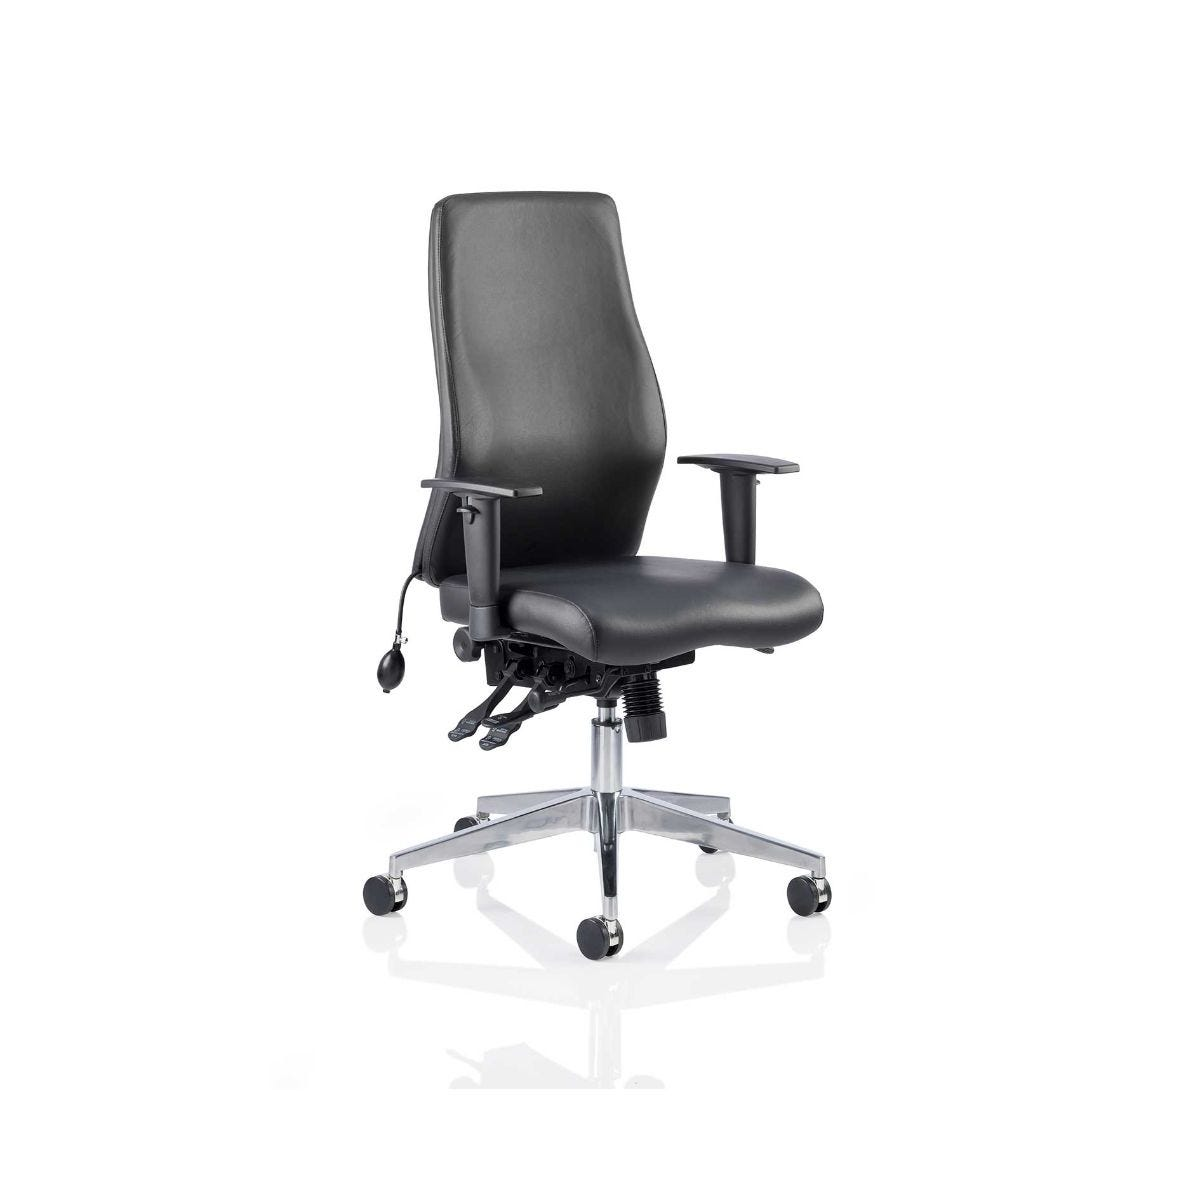 Onyx Leather Posture Office Chair, Black